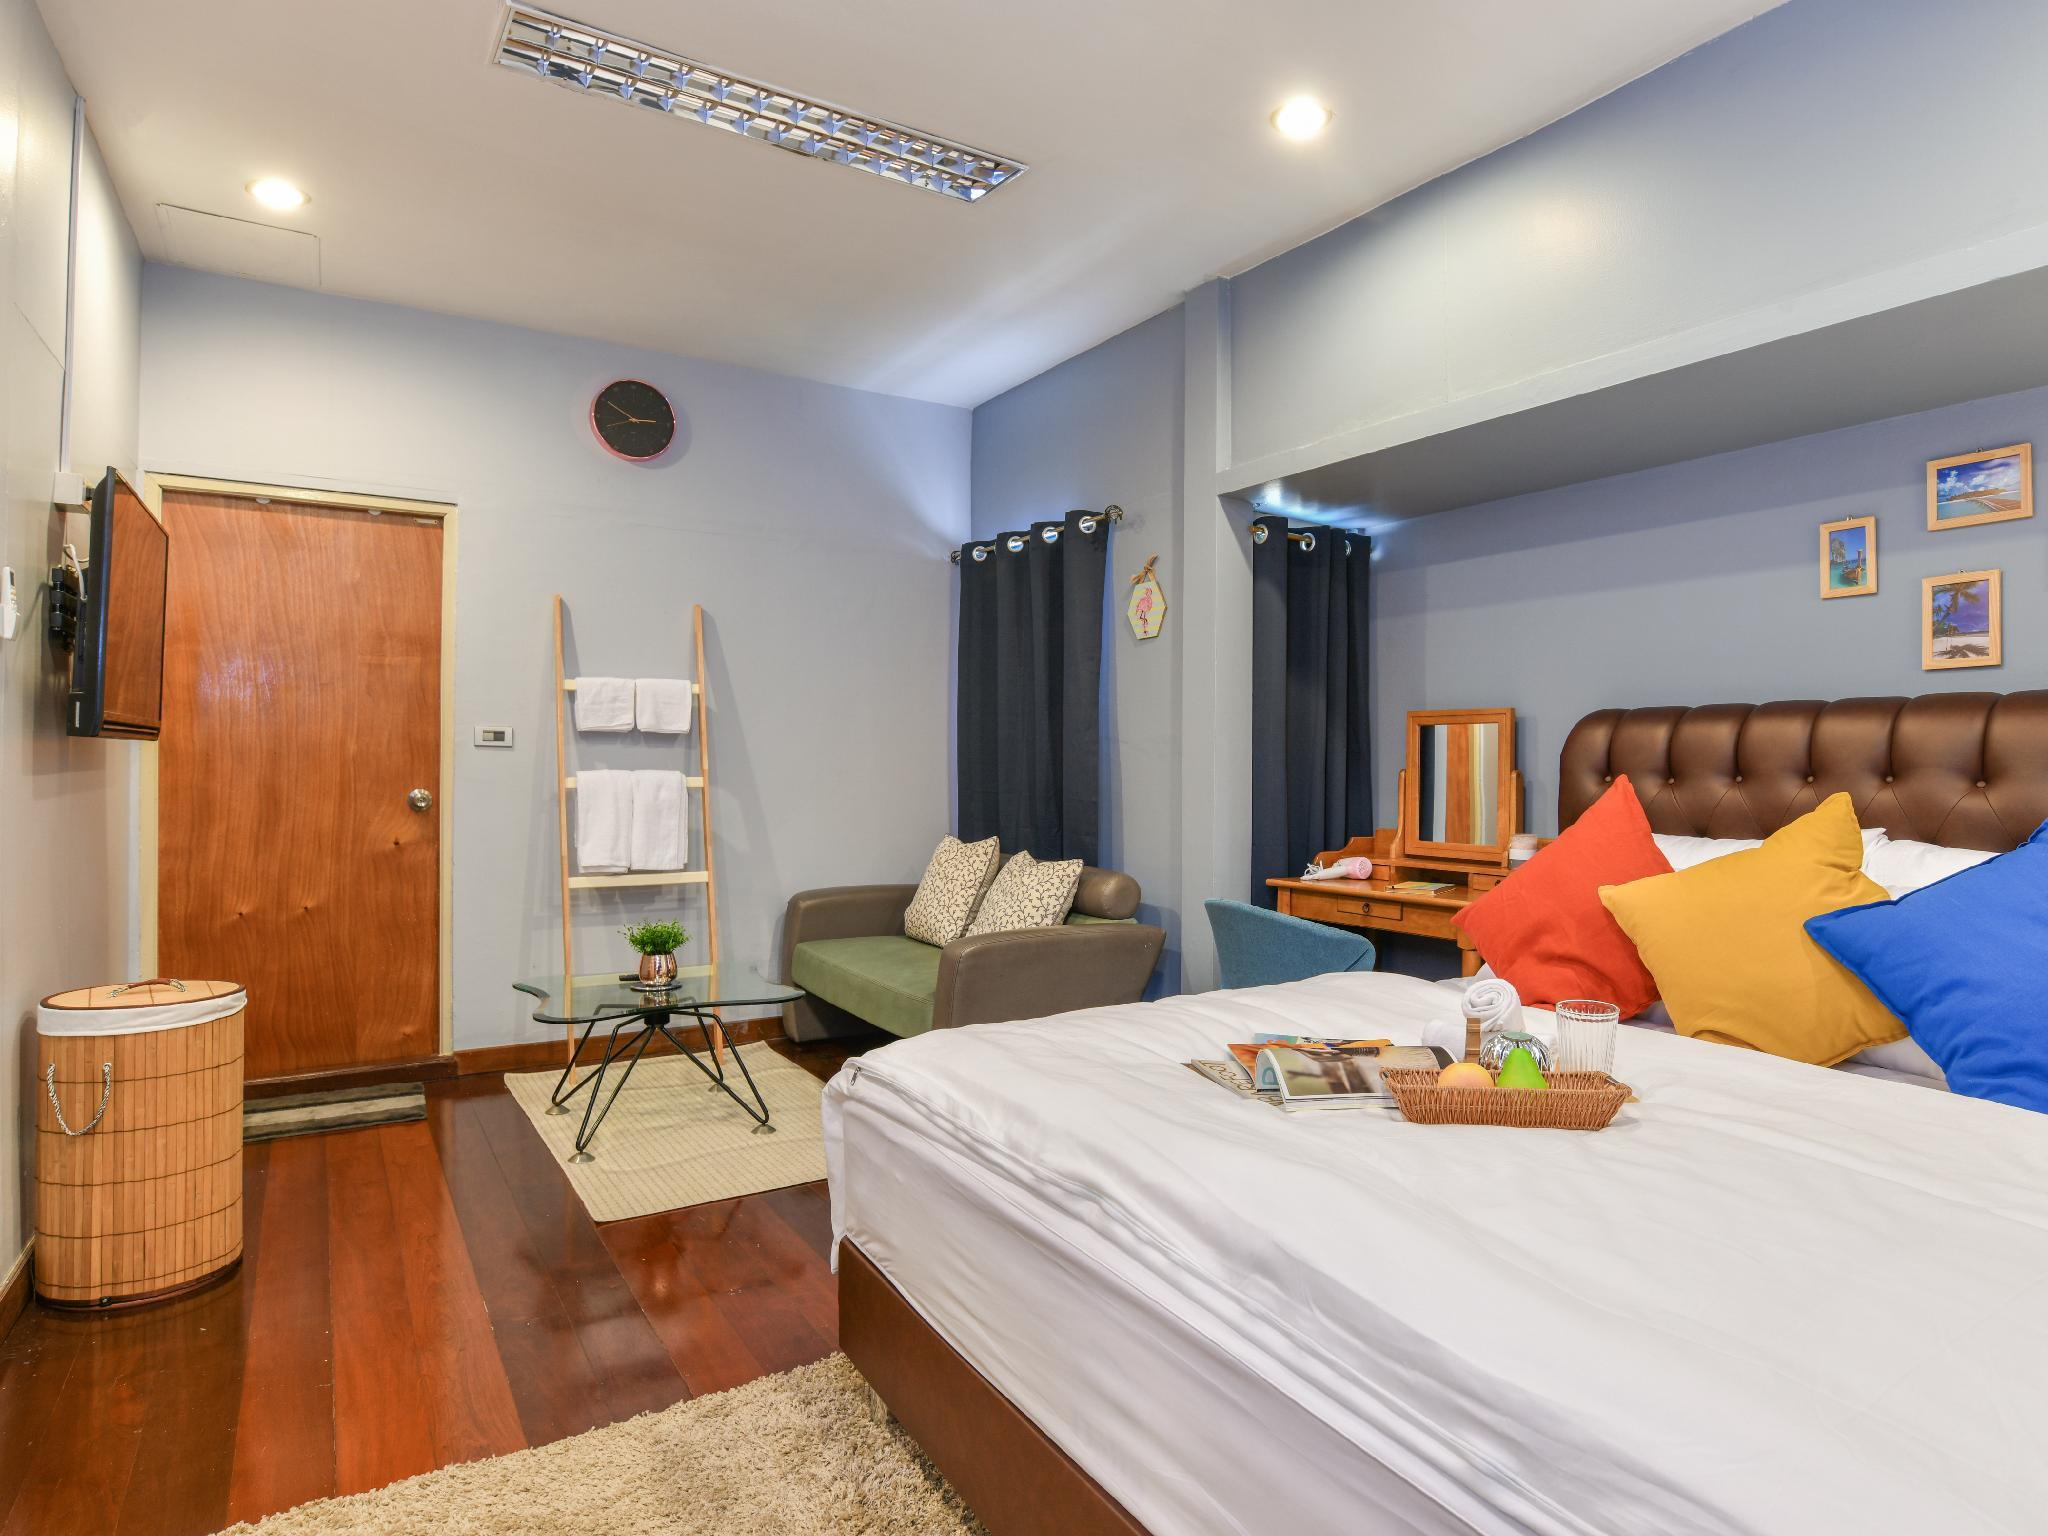 Thoonglor9 2Br.Private Homestay@Bts Thonglor Wifi